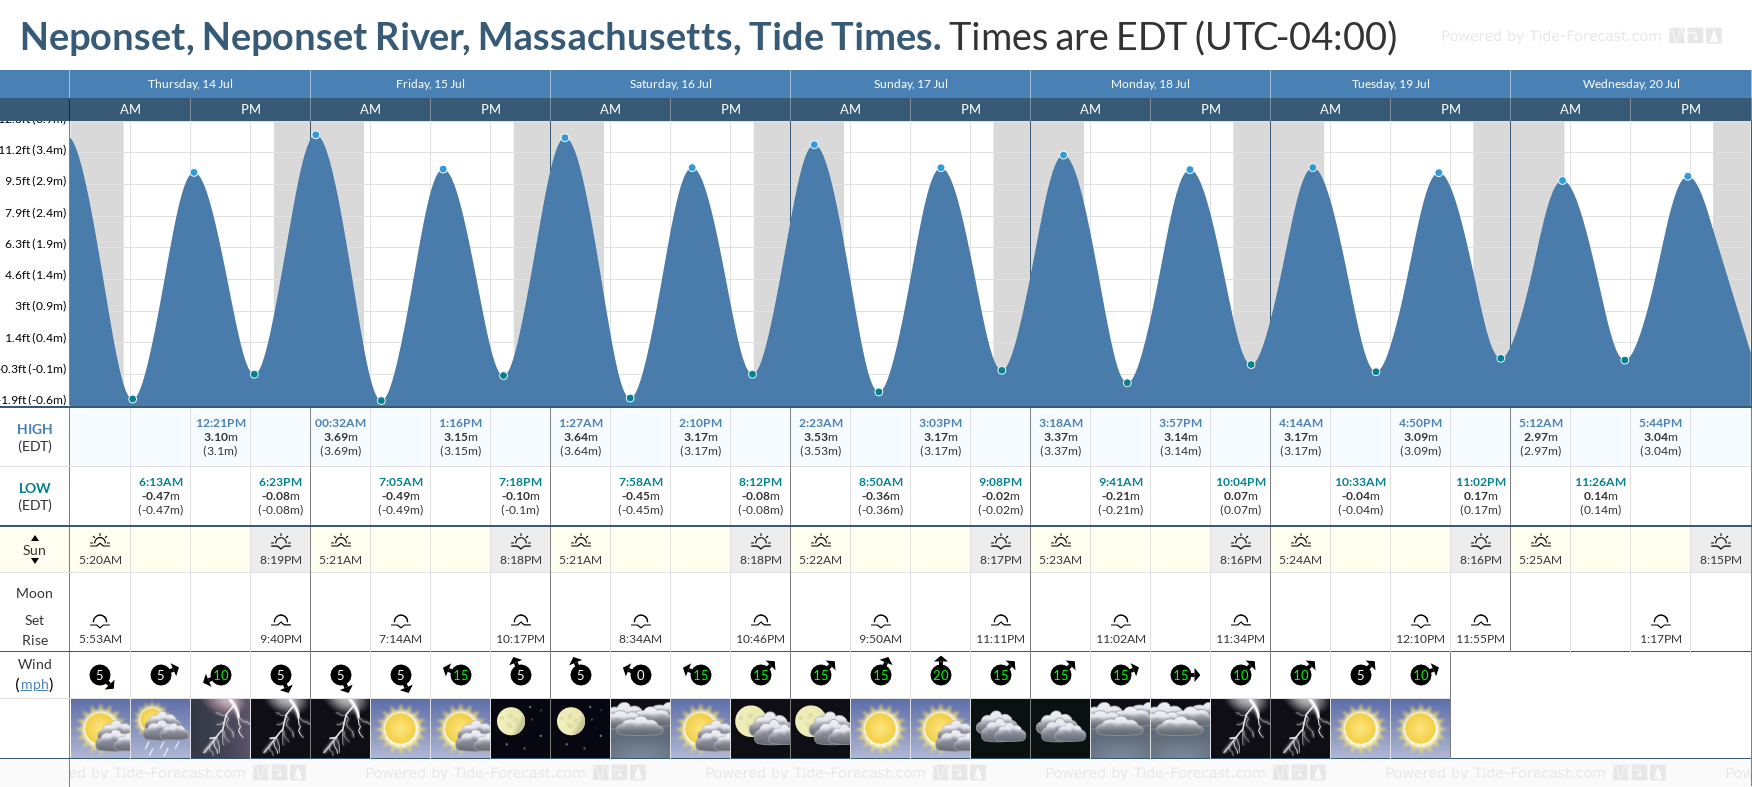 Neponset, Neponset River, Massachusetts Tide Chart including high and low tide tide times for the next 7 days